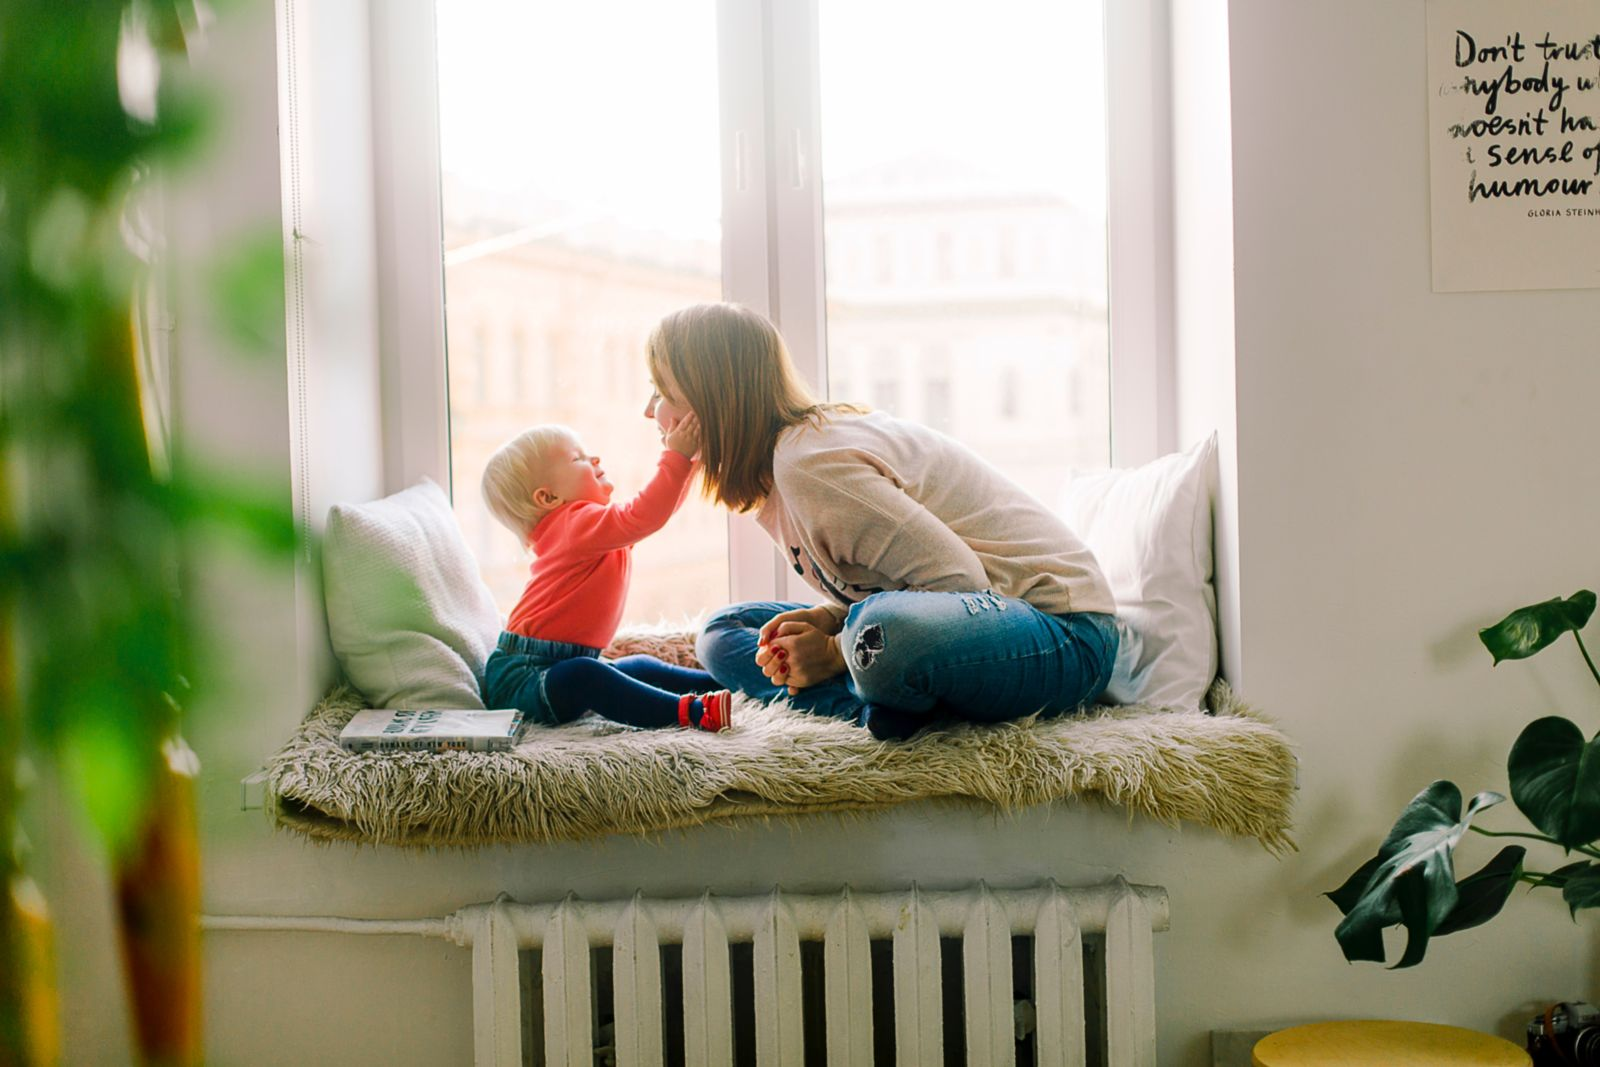 6 questions to ask when hiring a nanny or babysitter